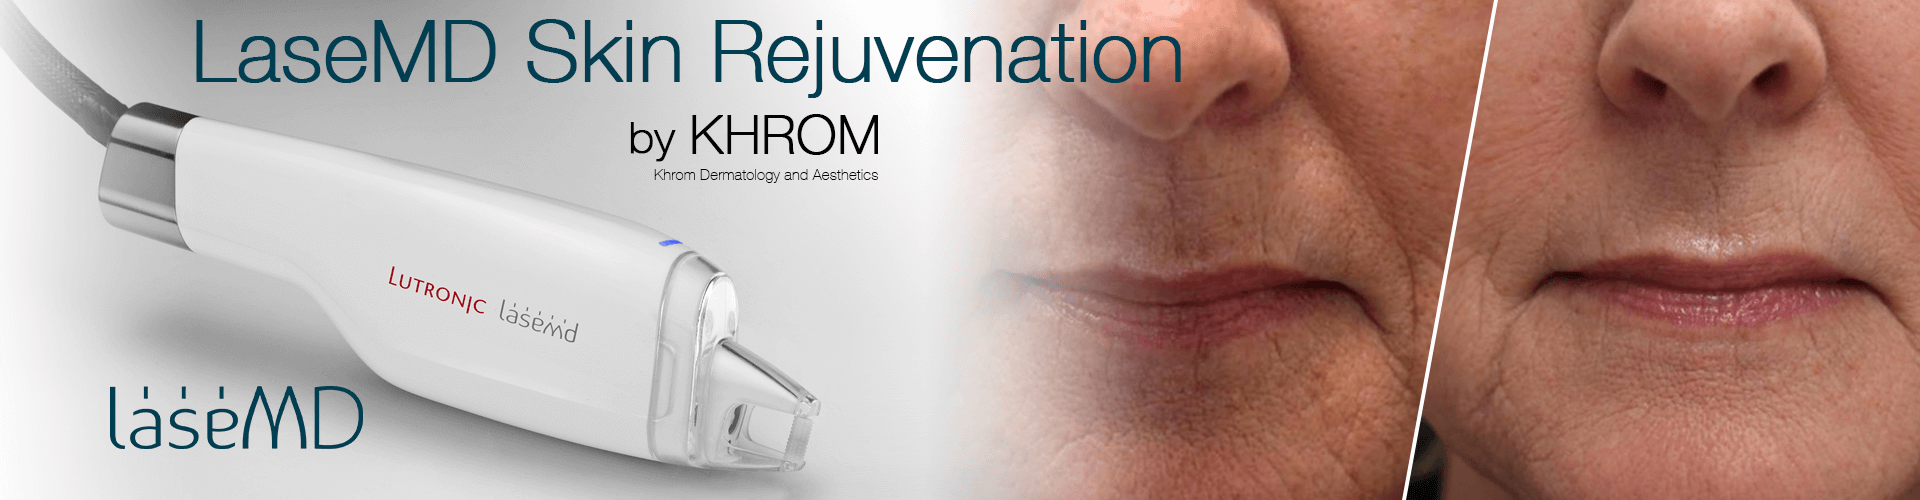 LaseMD Skin Rejuvenation By Khrom